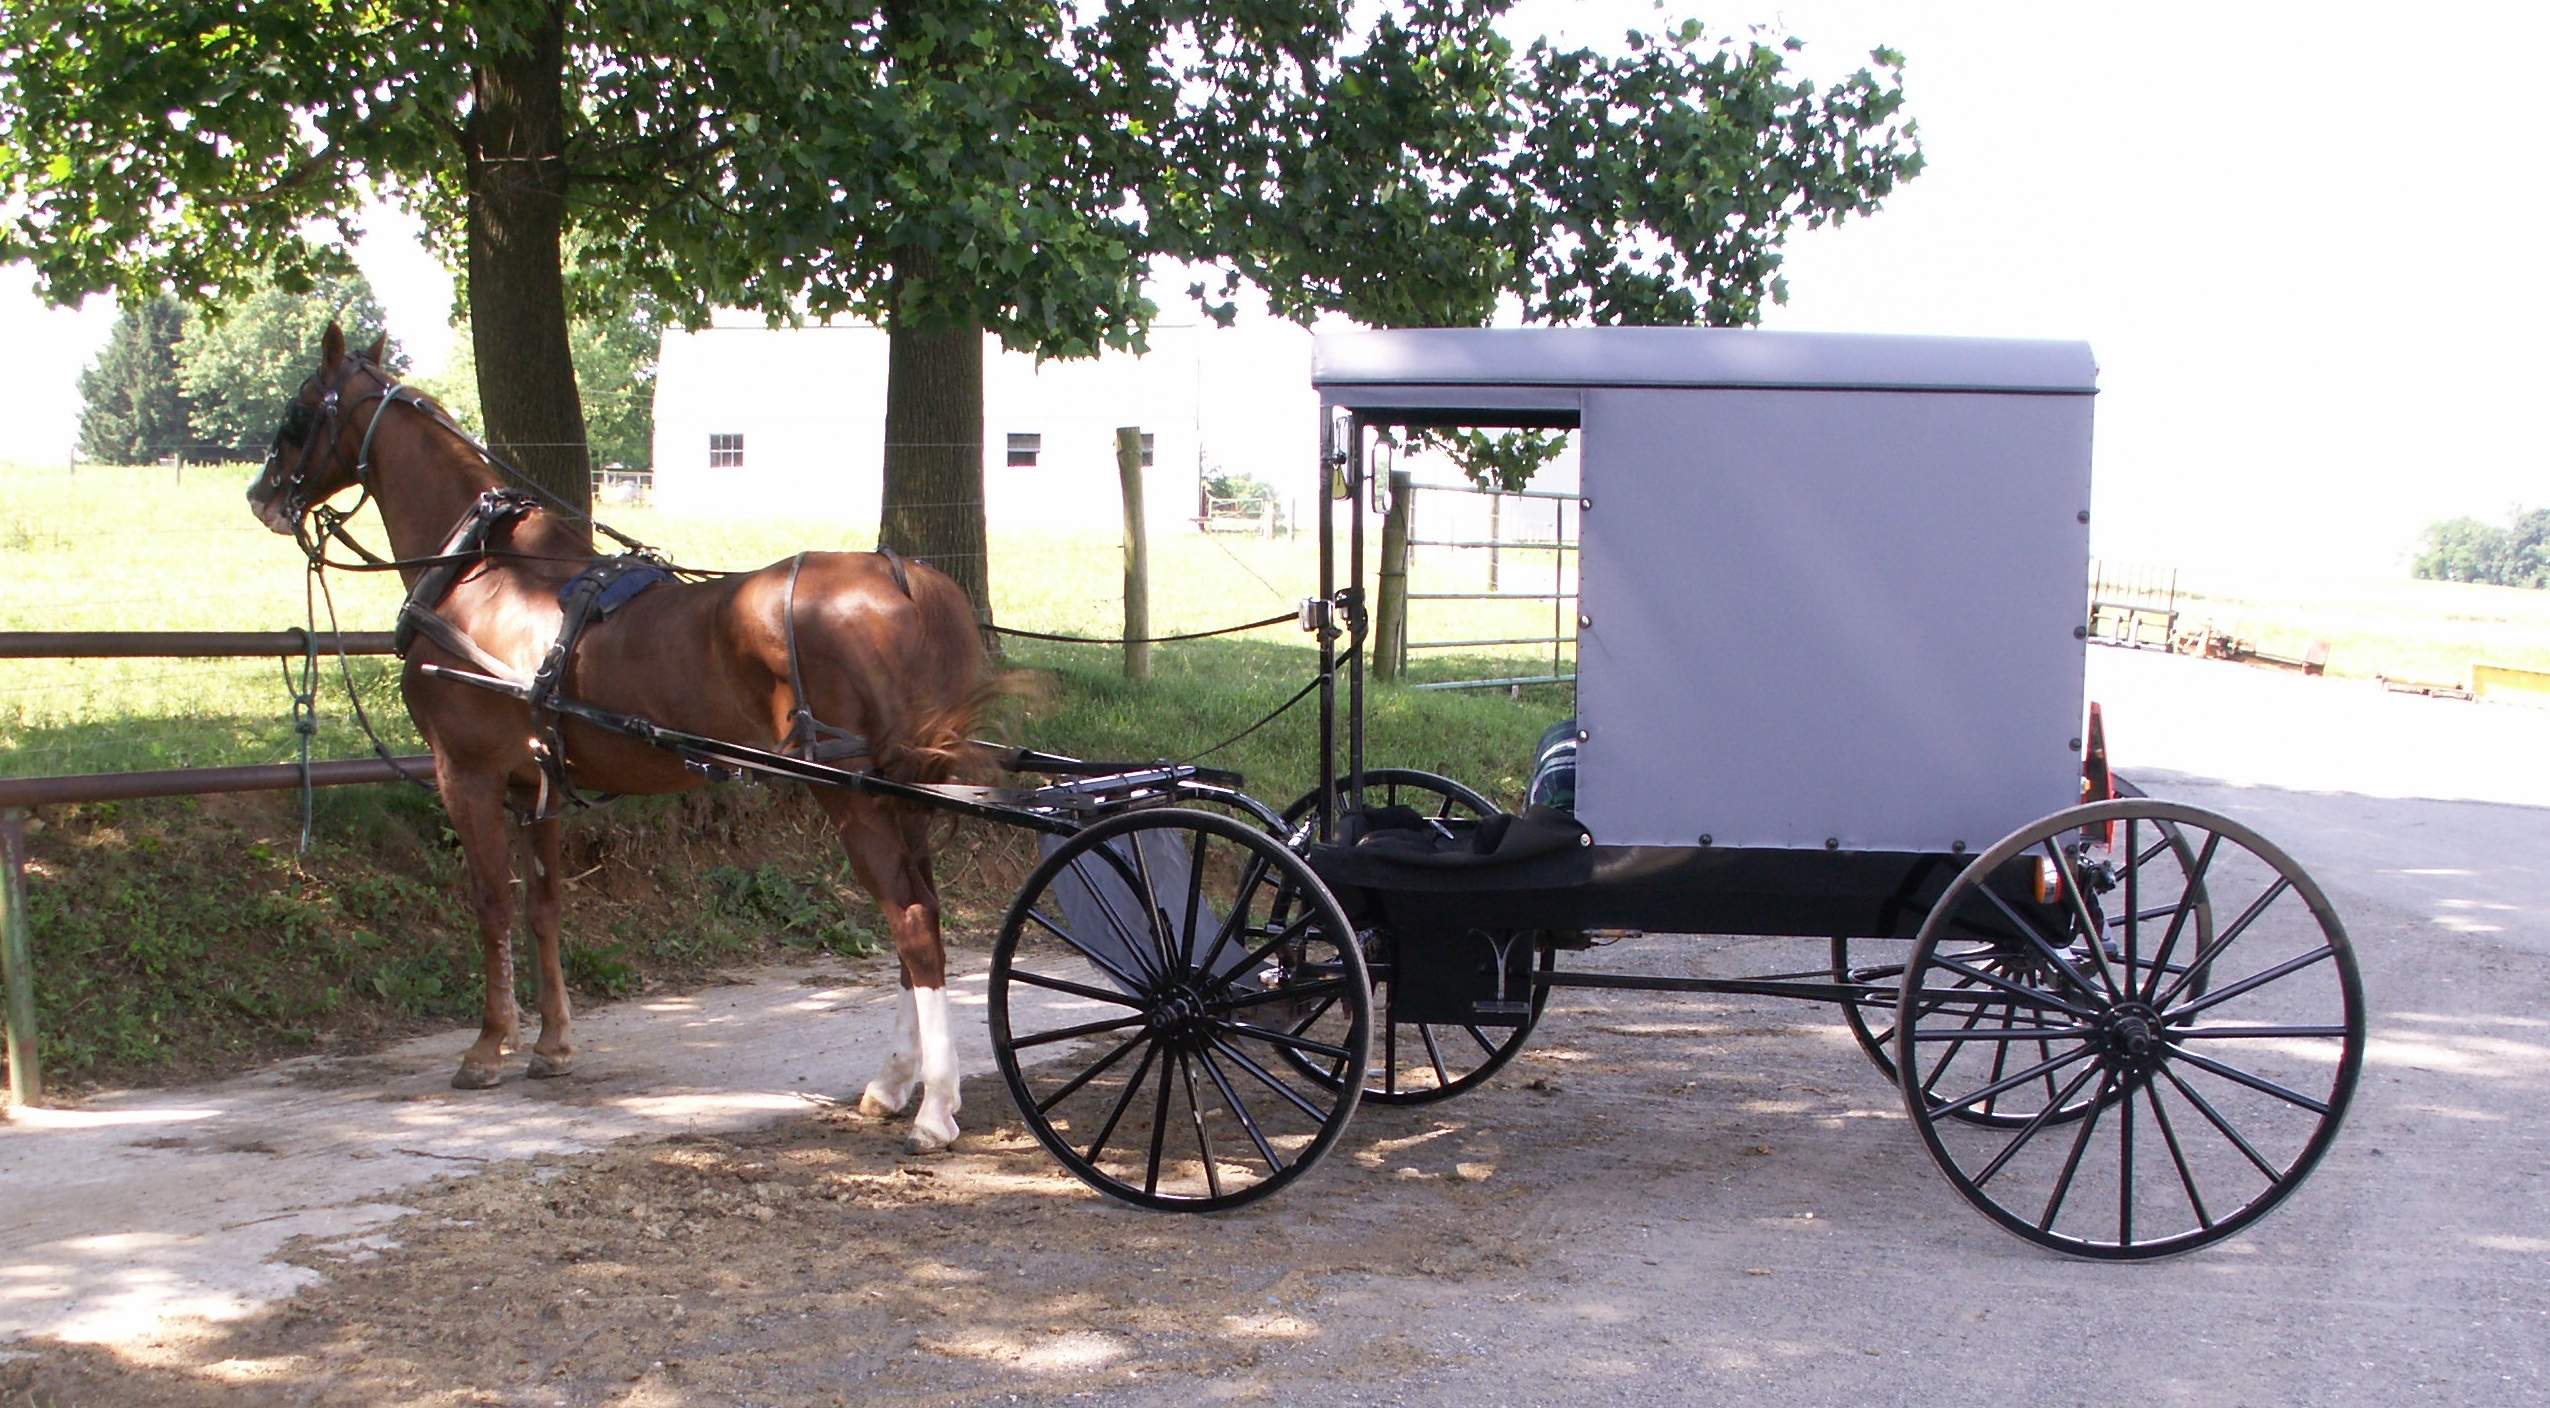 amish-country-009.jpg